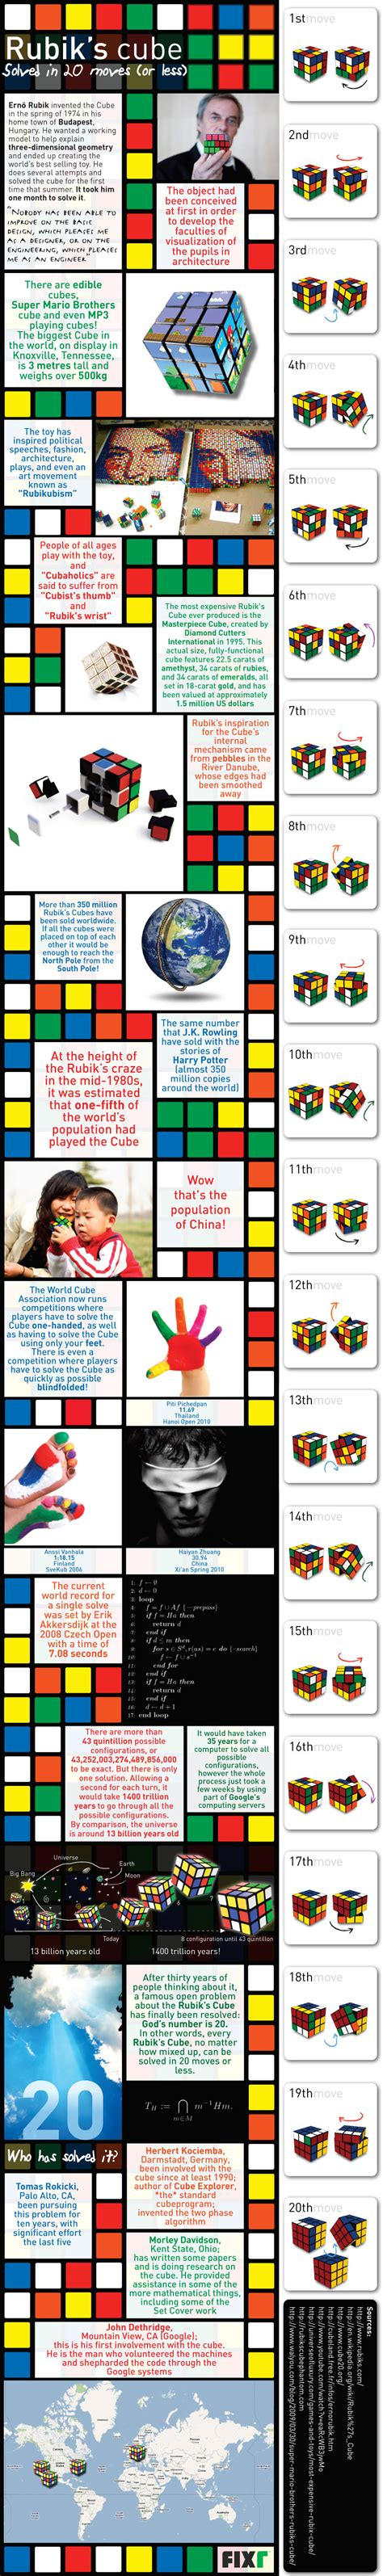 tutorial solve rubik s cube tutorial solve rubix cube in 20 moves or less realitypod